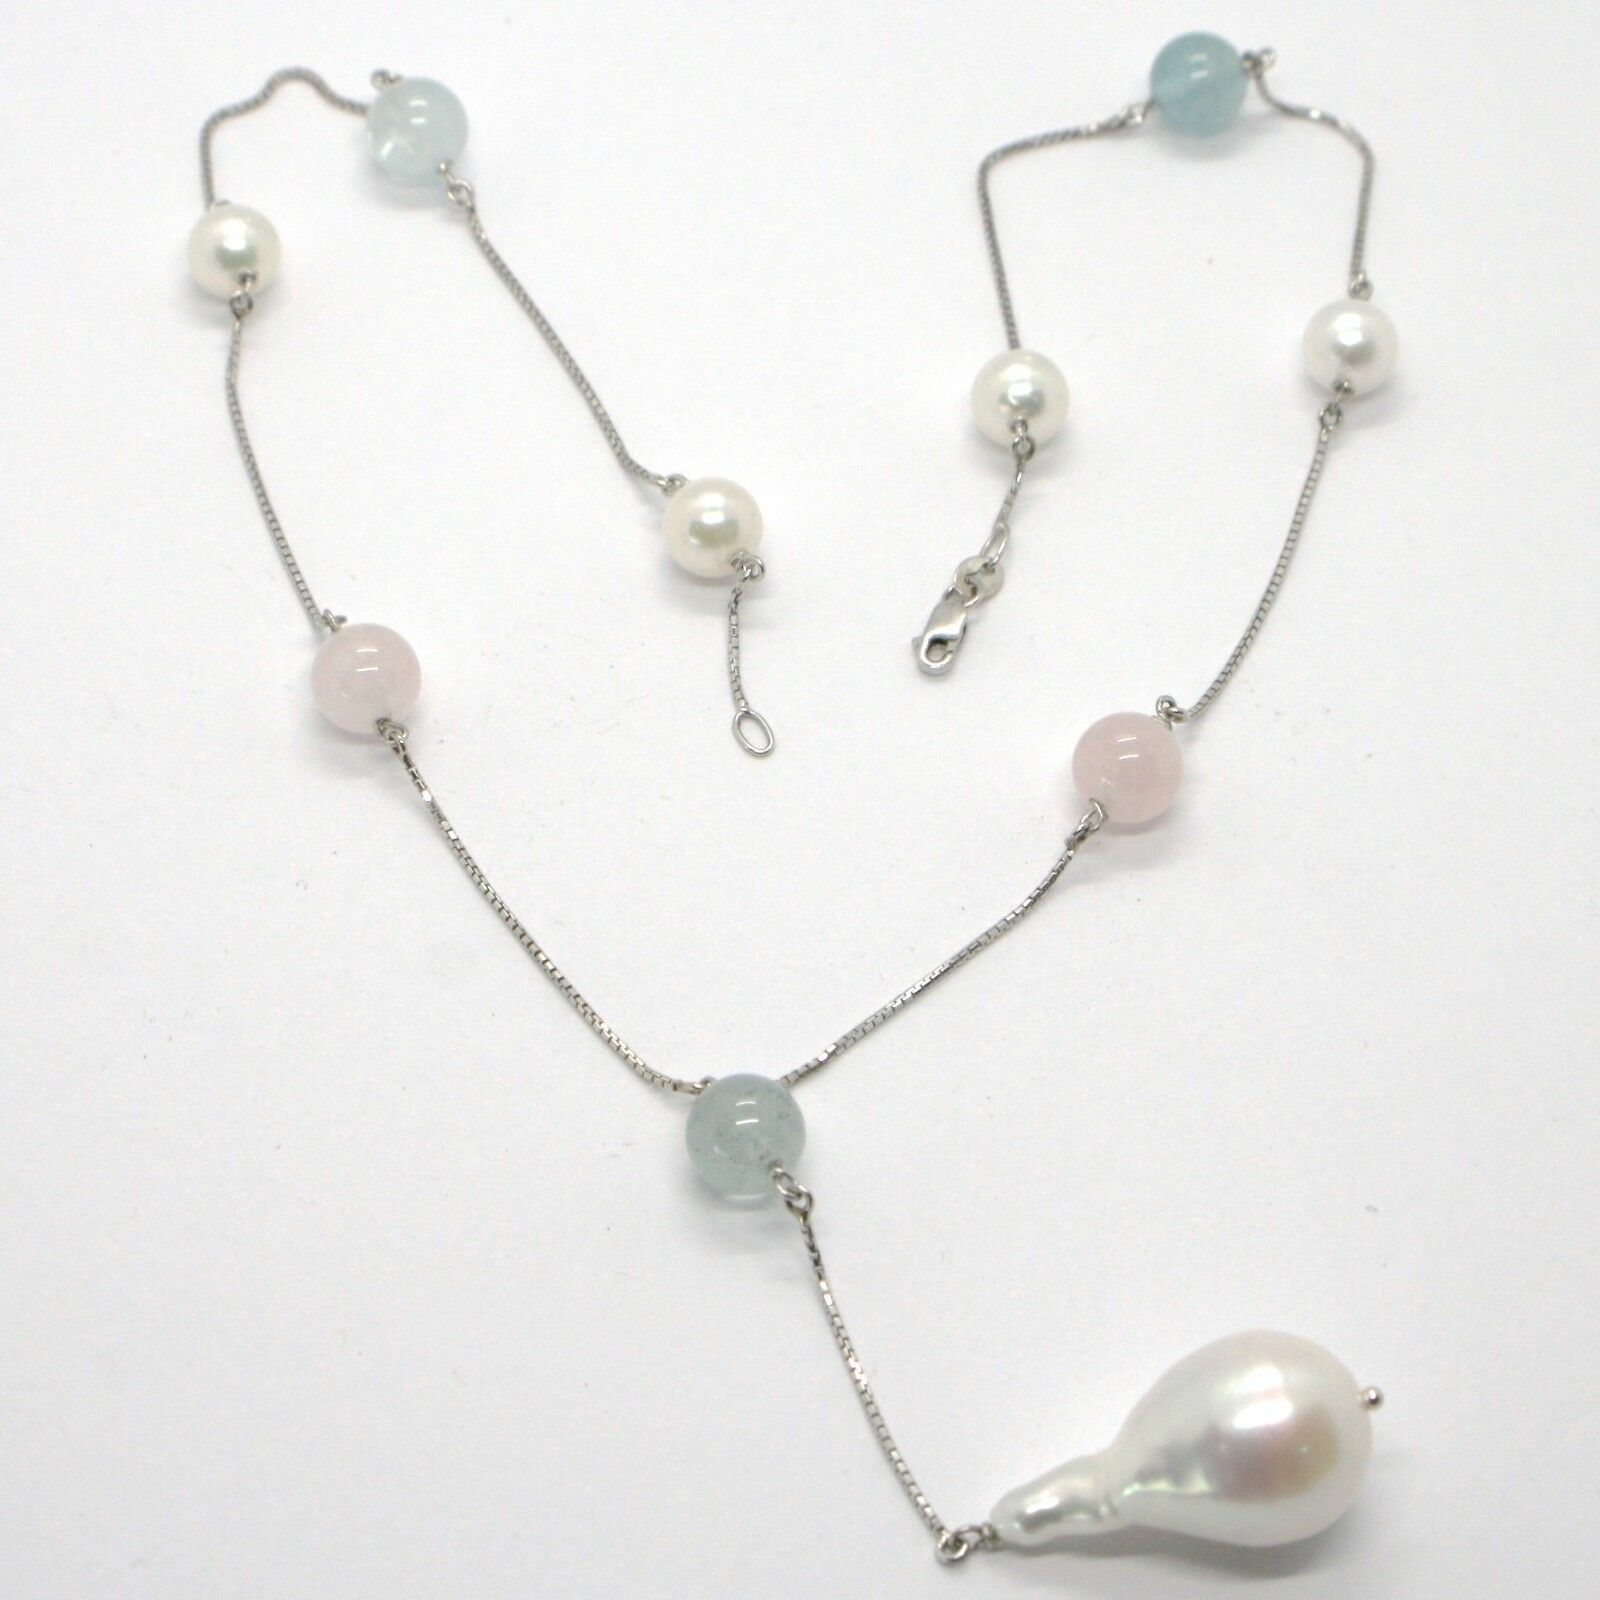 18K WHITE GOLD LARIAT NECKLACE VENETIAN CHAIN AKOYA PEARL, GREEN PINK AQUAMARINE